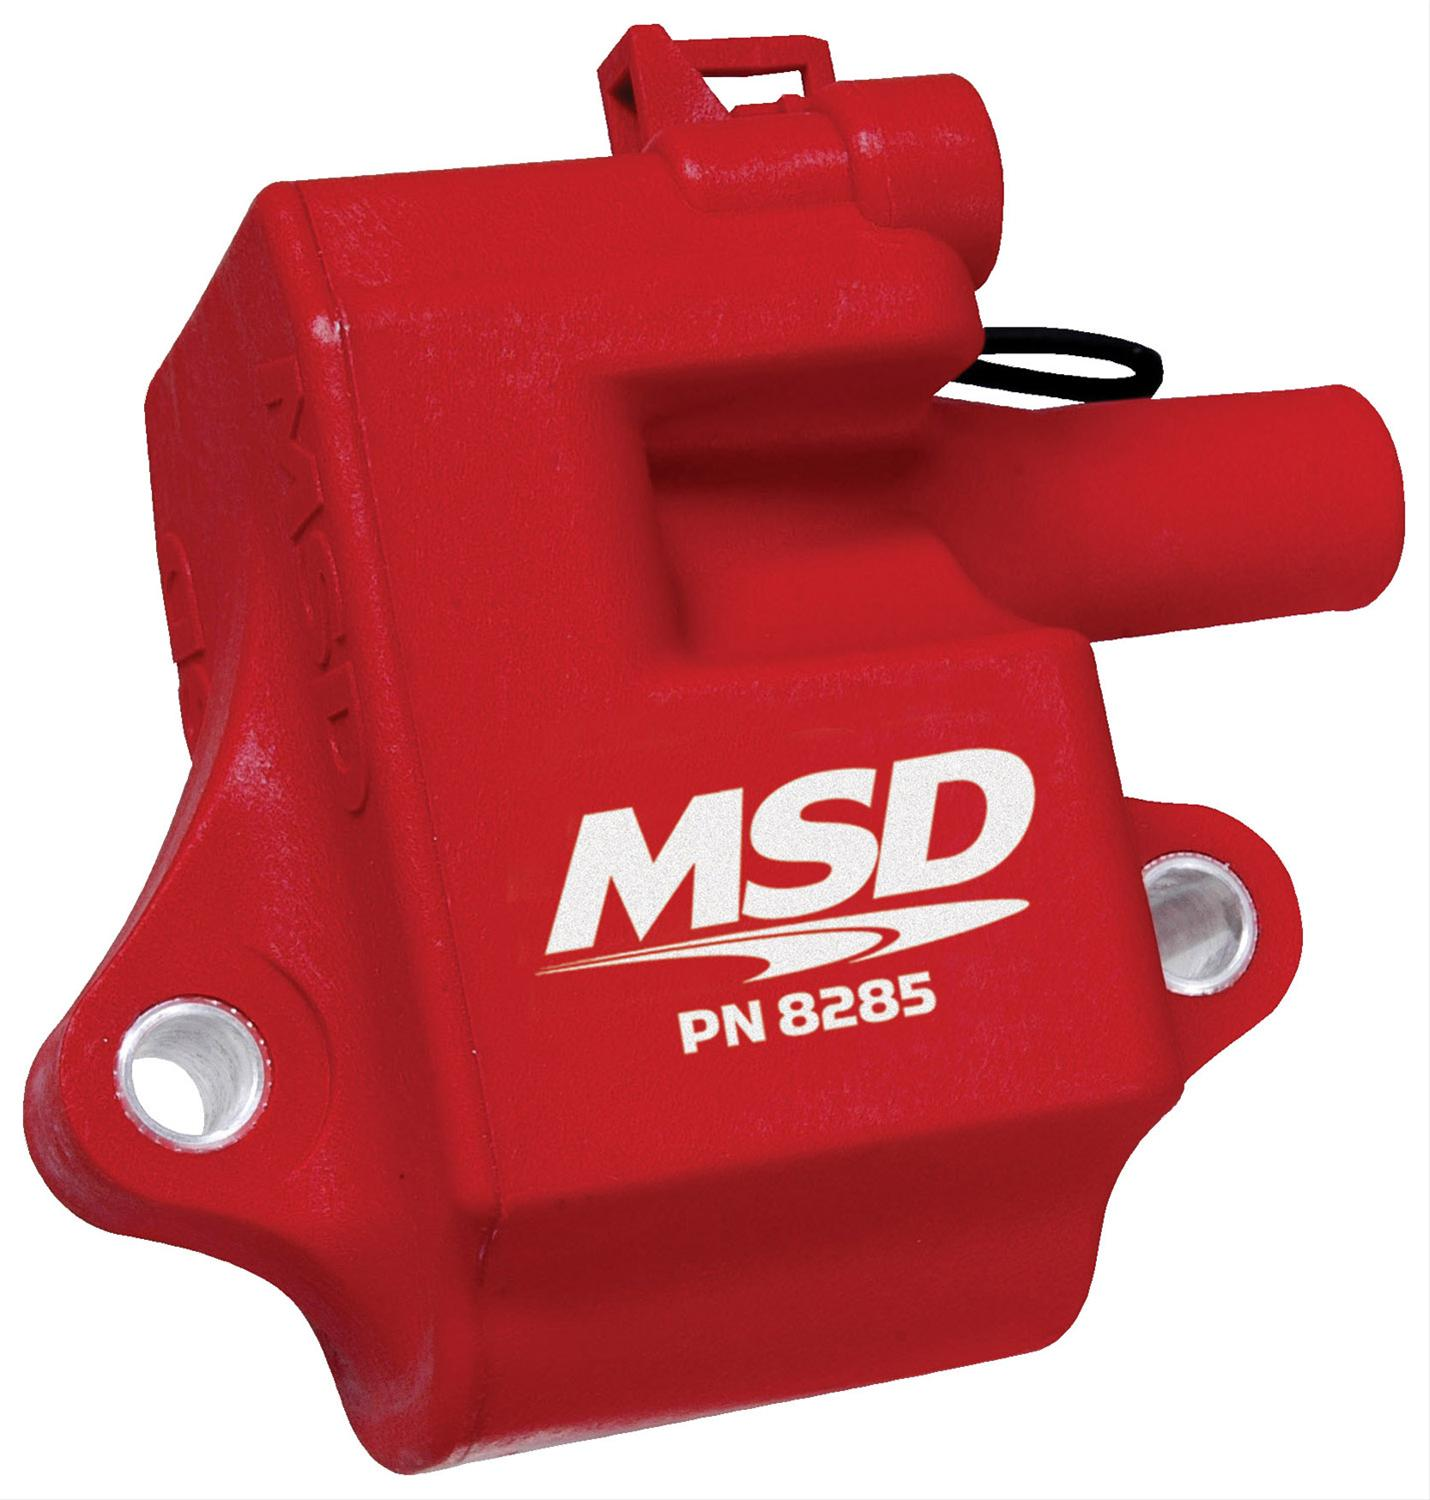 Msd Multiple Spark Coils And Coil Kits 82858 Gm Pack Wiring Free Shipping On Orders Over 49 At Summit Racing